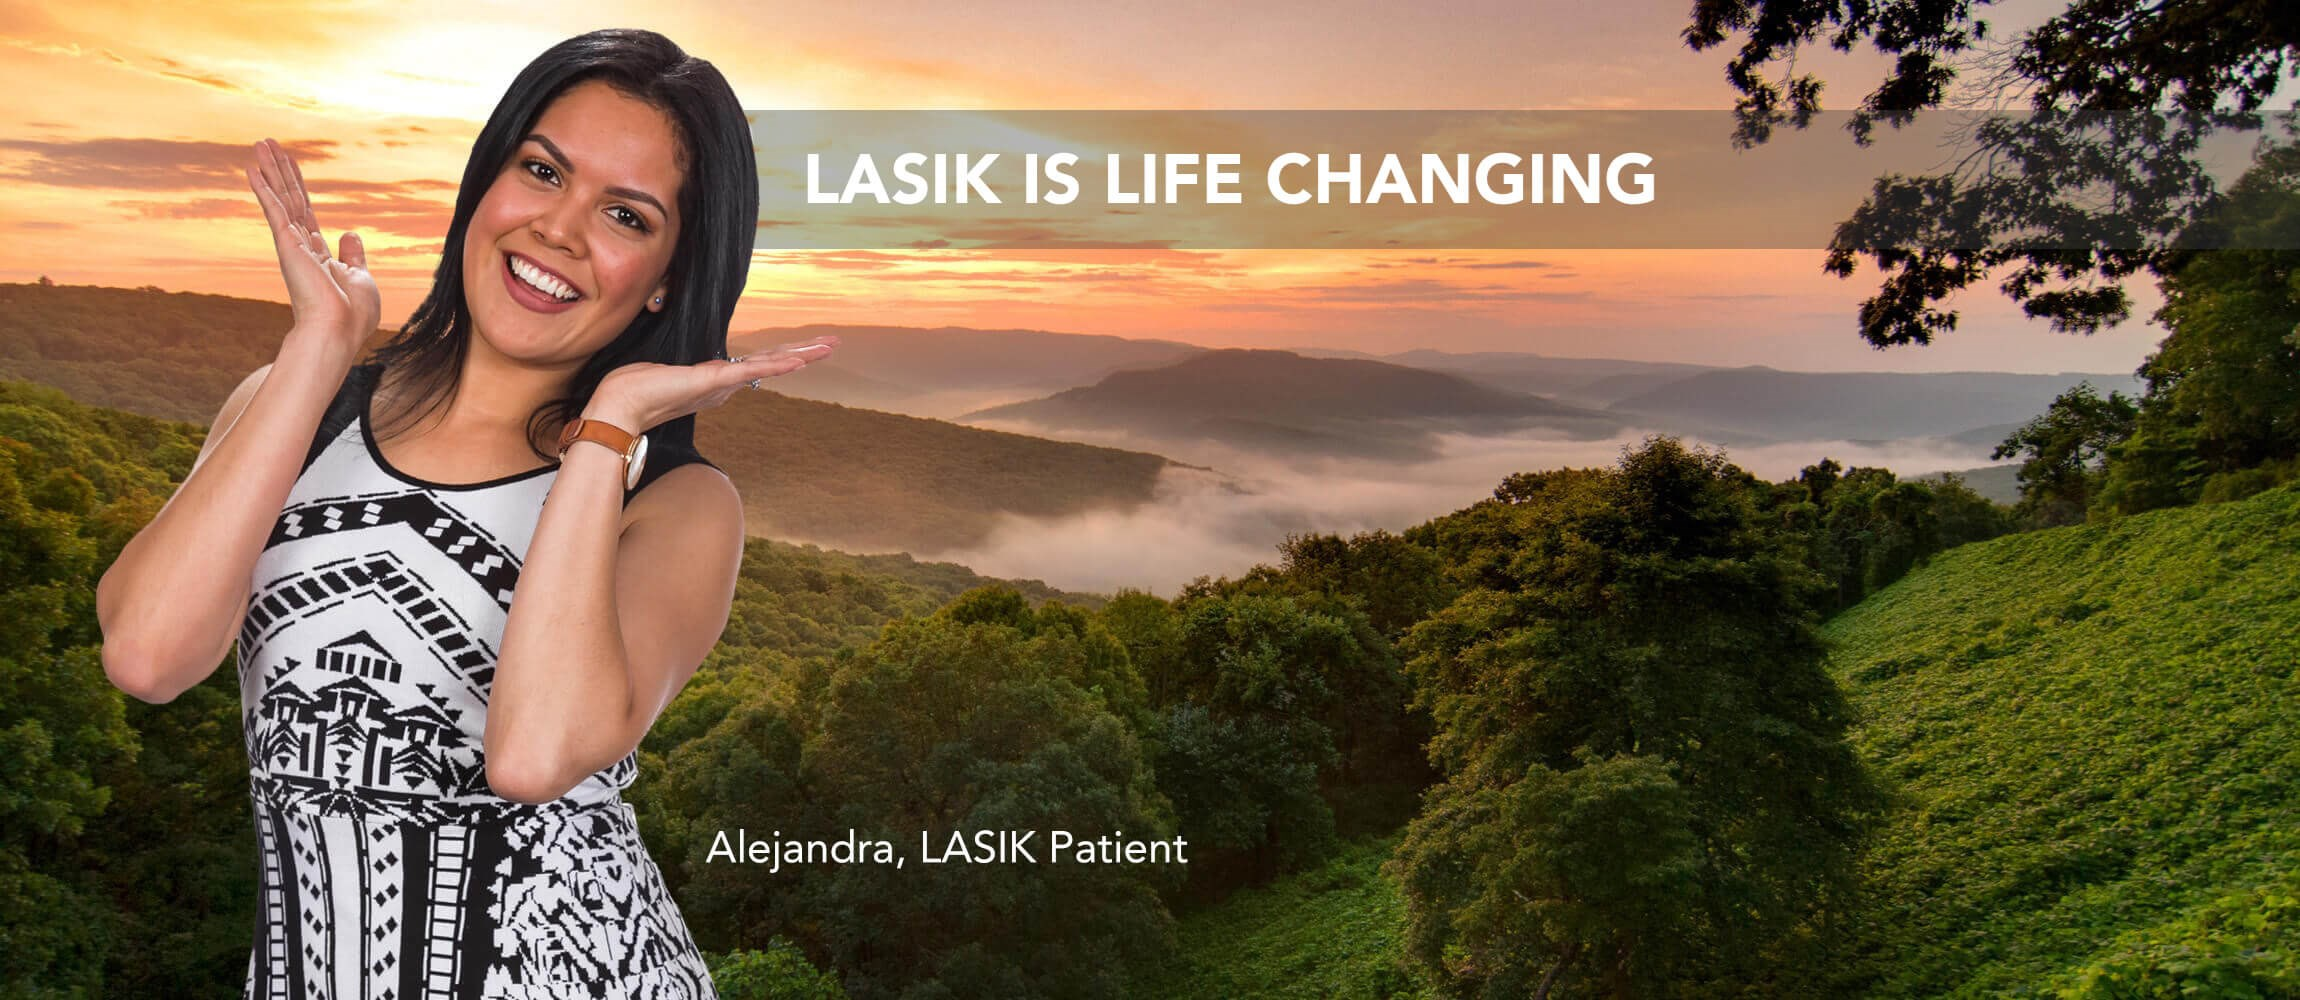 LASIK is life-changing. -